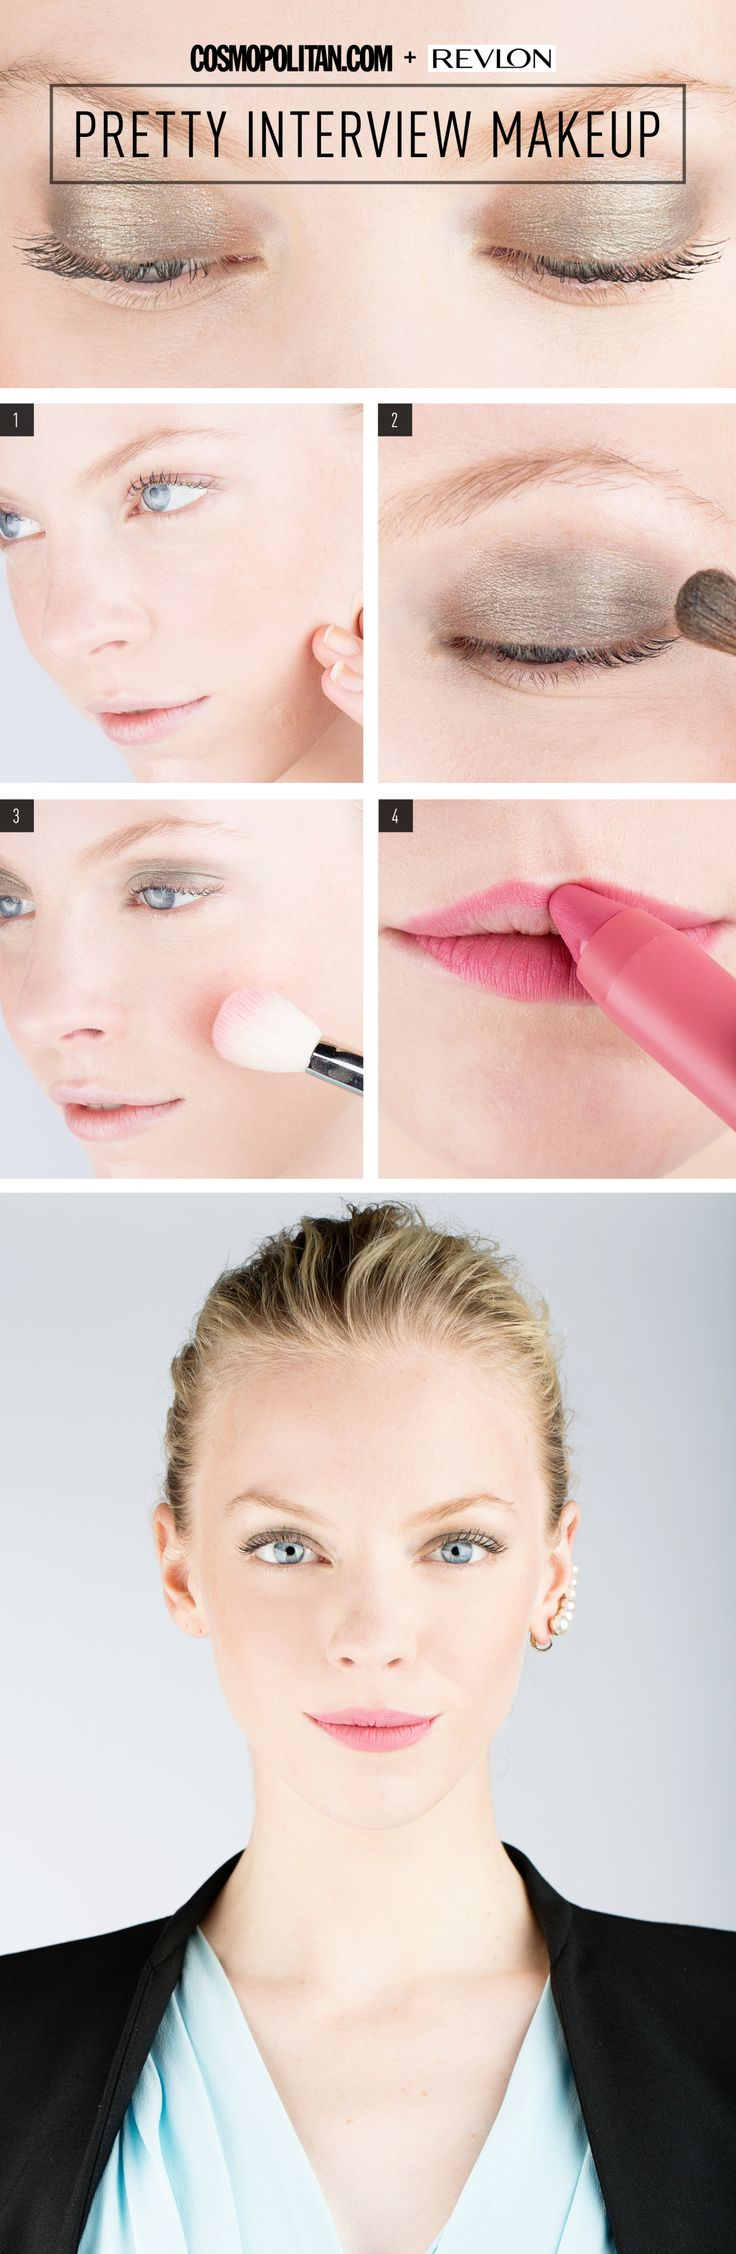 INTERVIEW MAKEUP TUTORIAL: There's no doubt you'll land the job with thi...